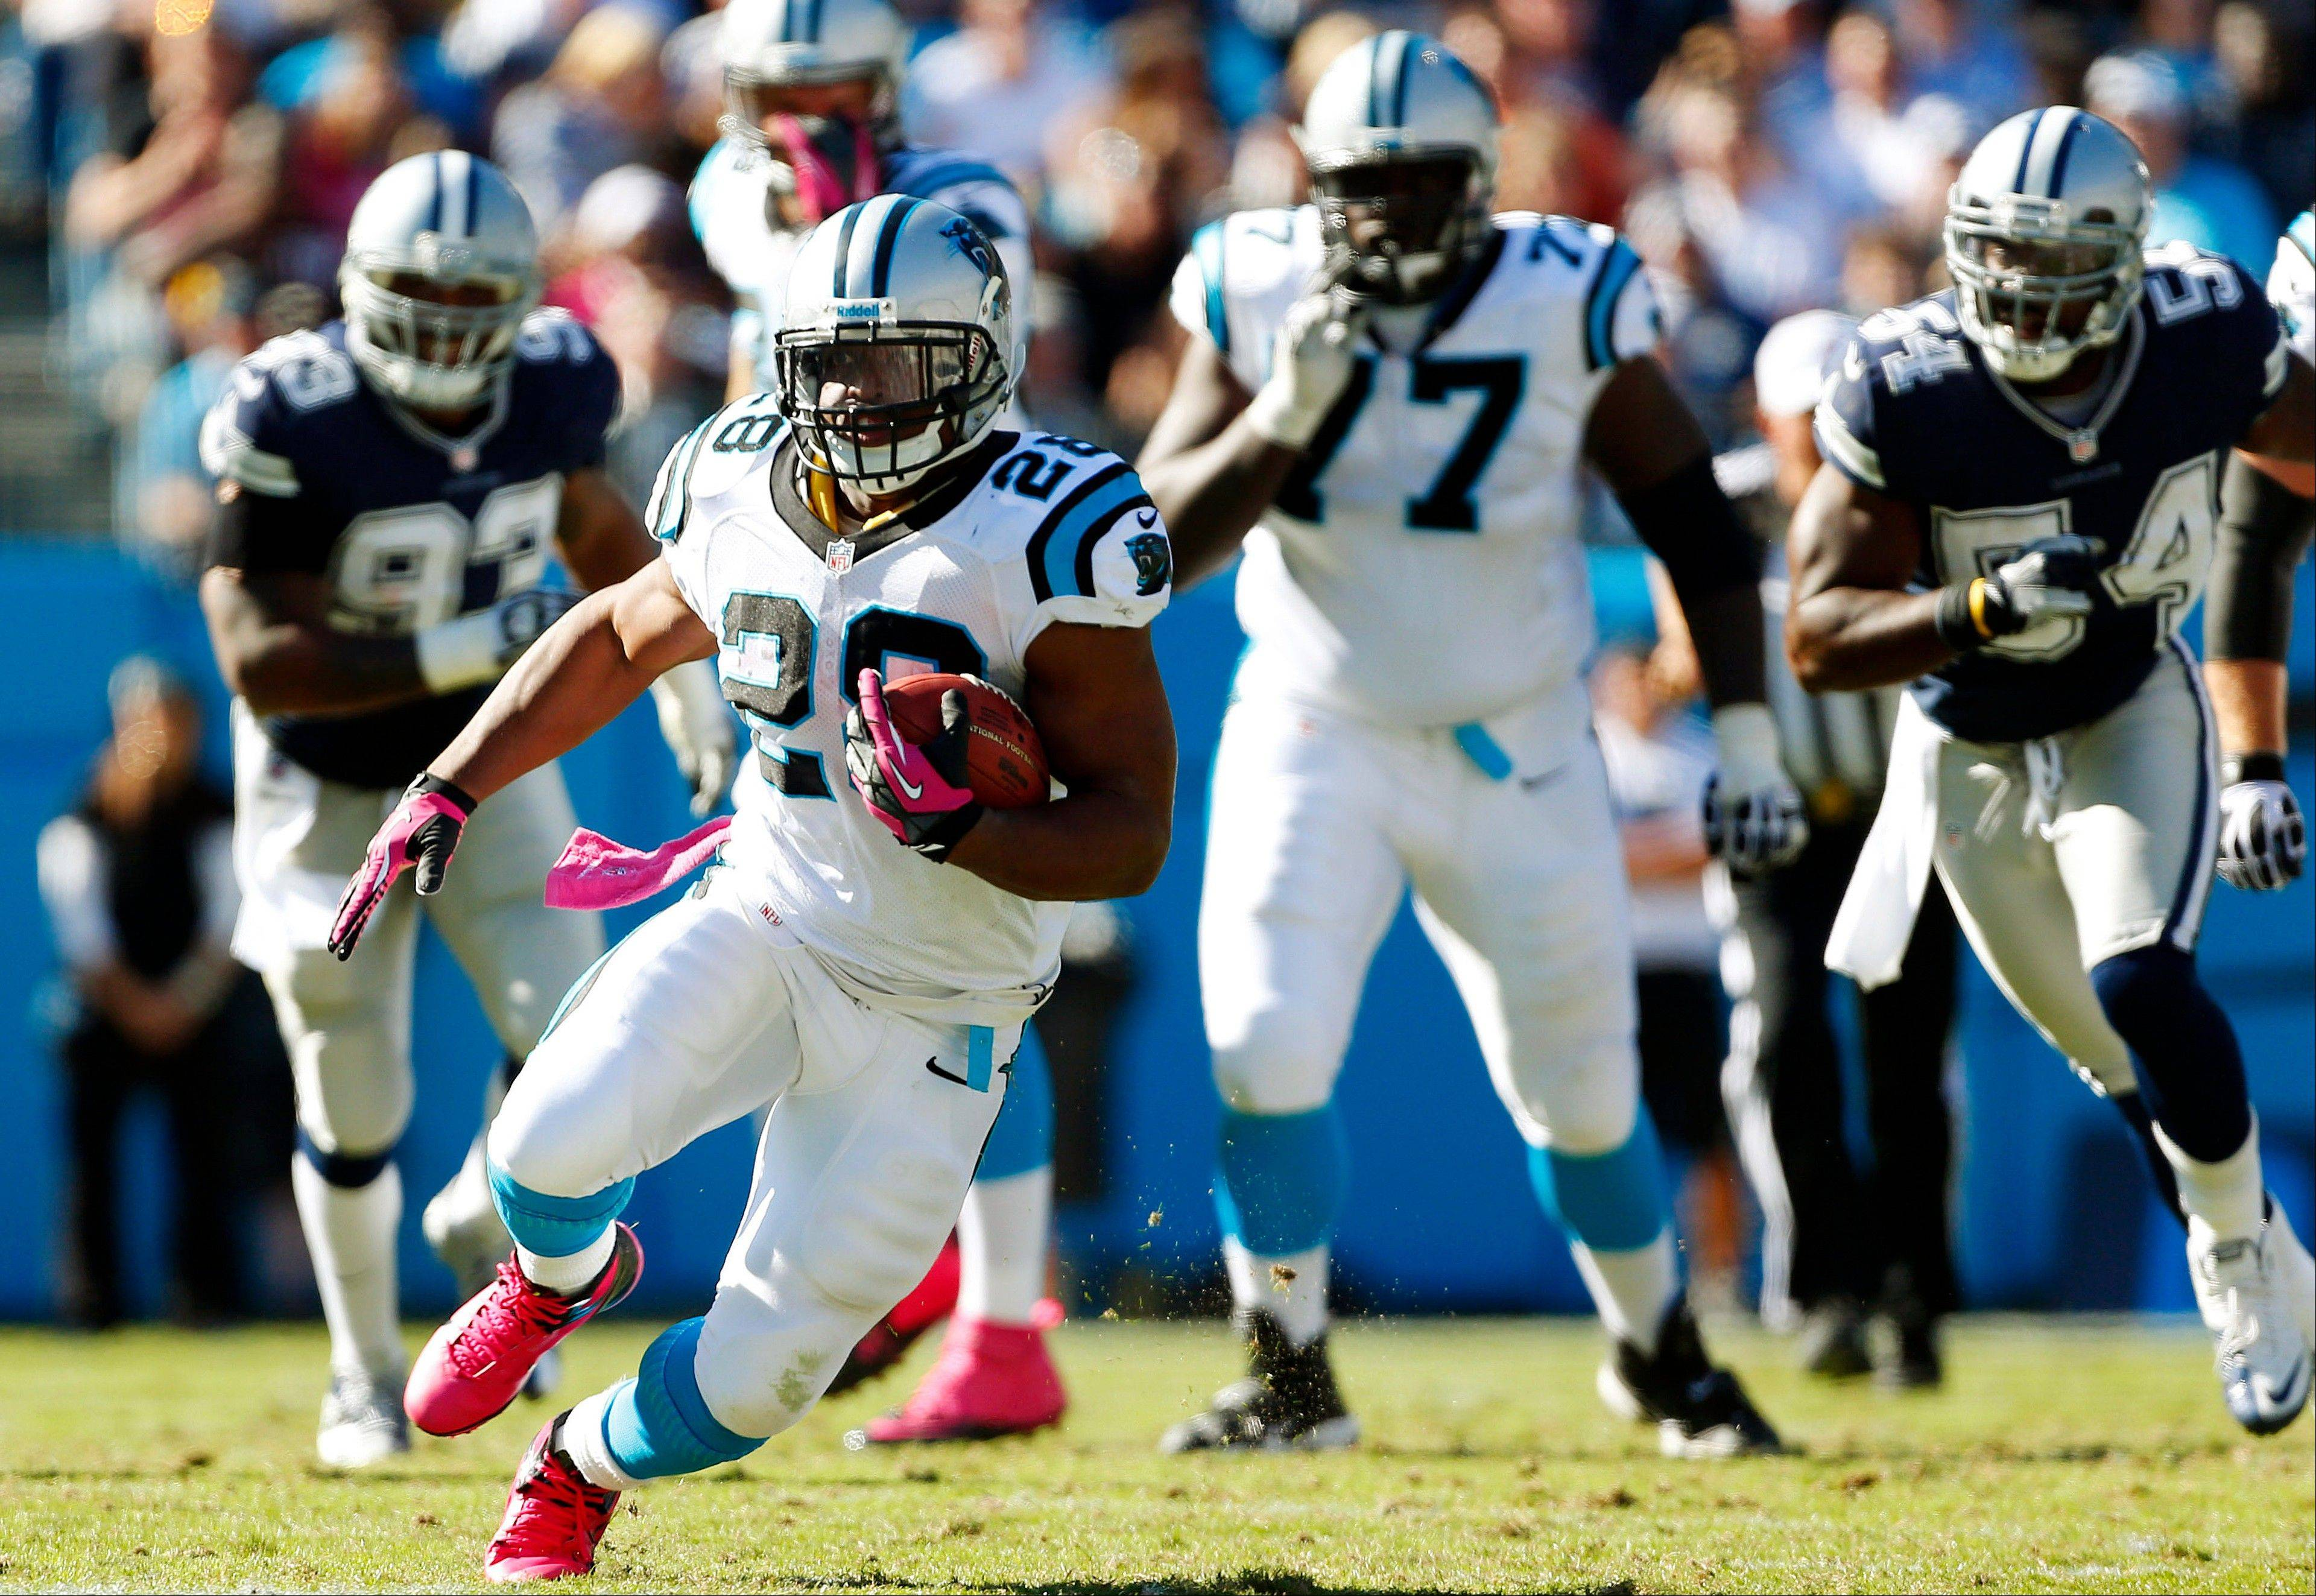 Carolina Panthers running back Jonathan Stewart (28) rushes upfield against the Dallas Cowboys during the second half of an NFL football game, Sunday, Oct. 21, 2012, in Charlotte, N.C.